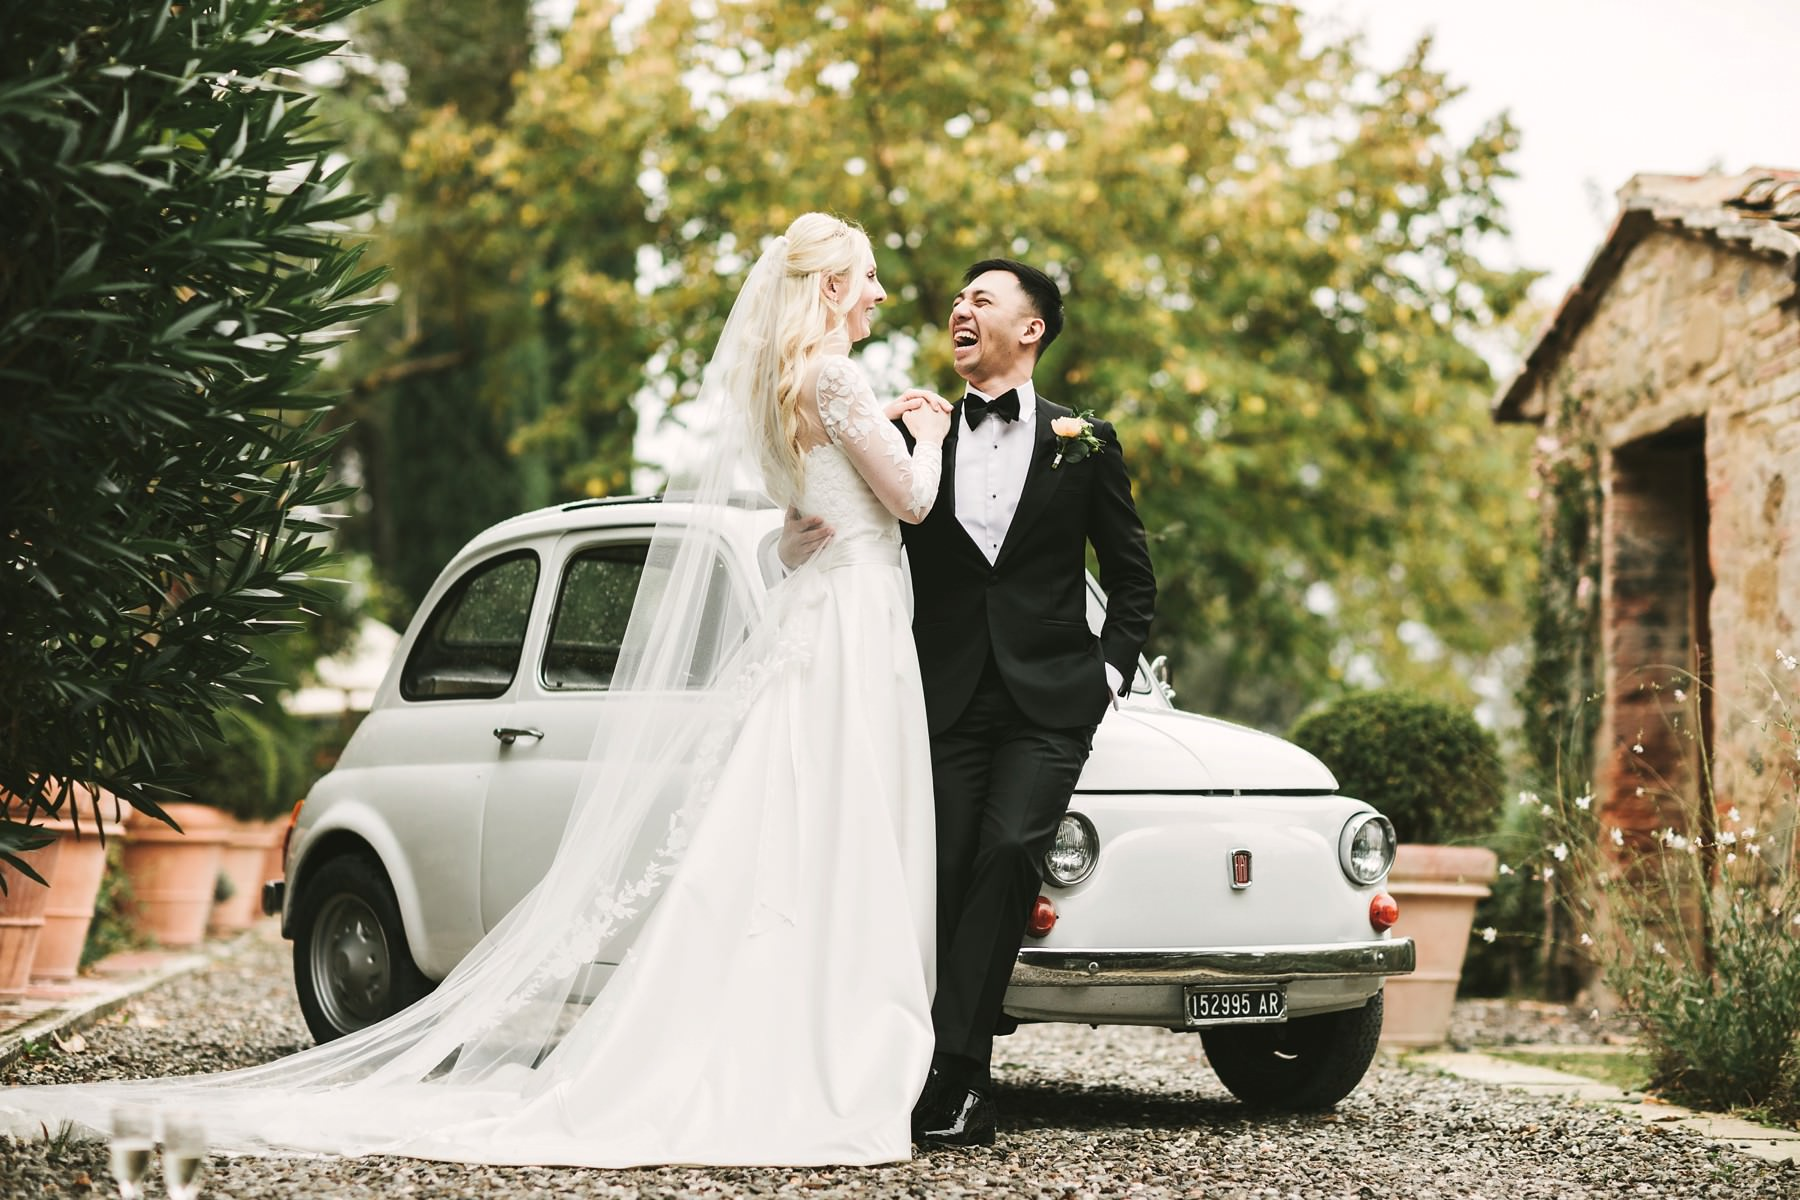 Exciting bride and groom wedding portrait with Fiat 500